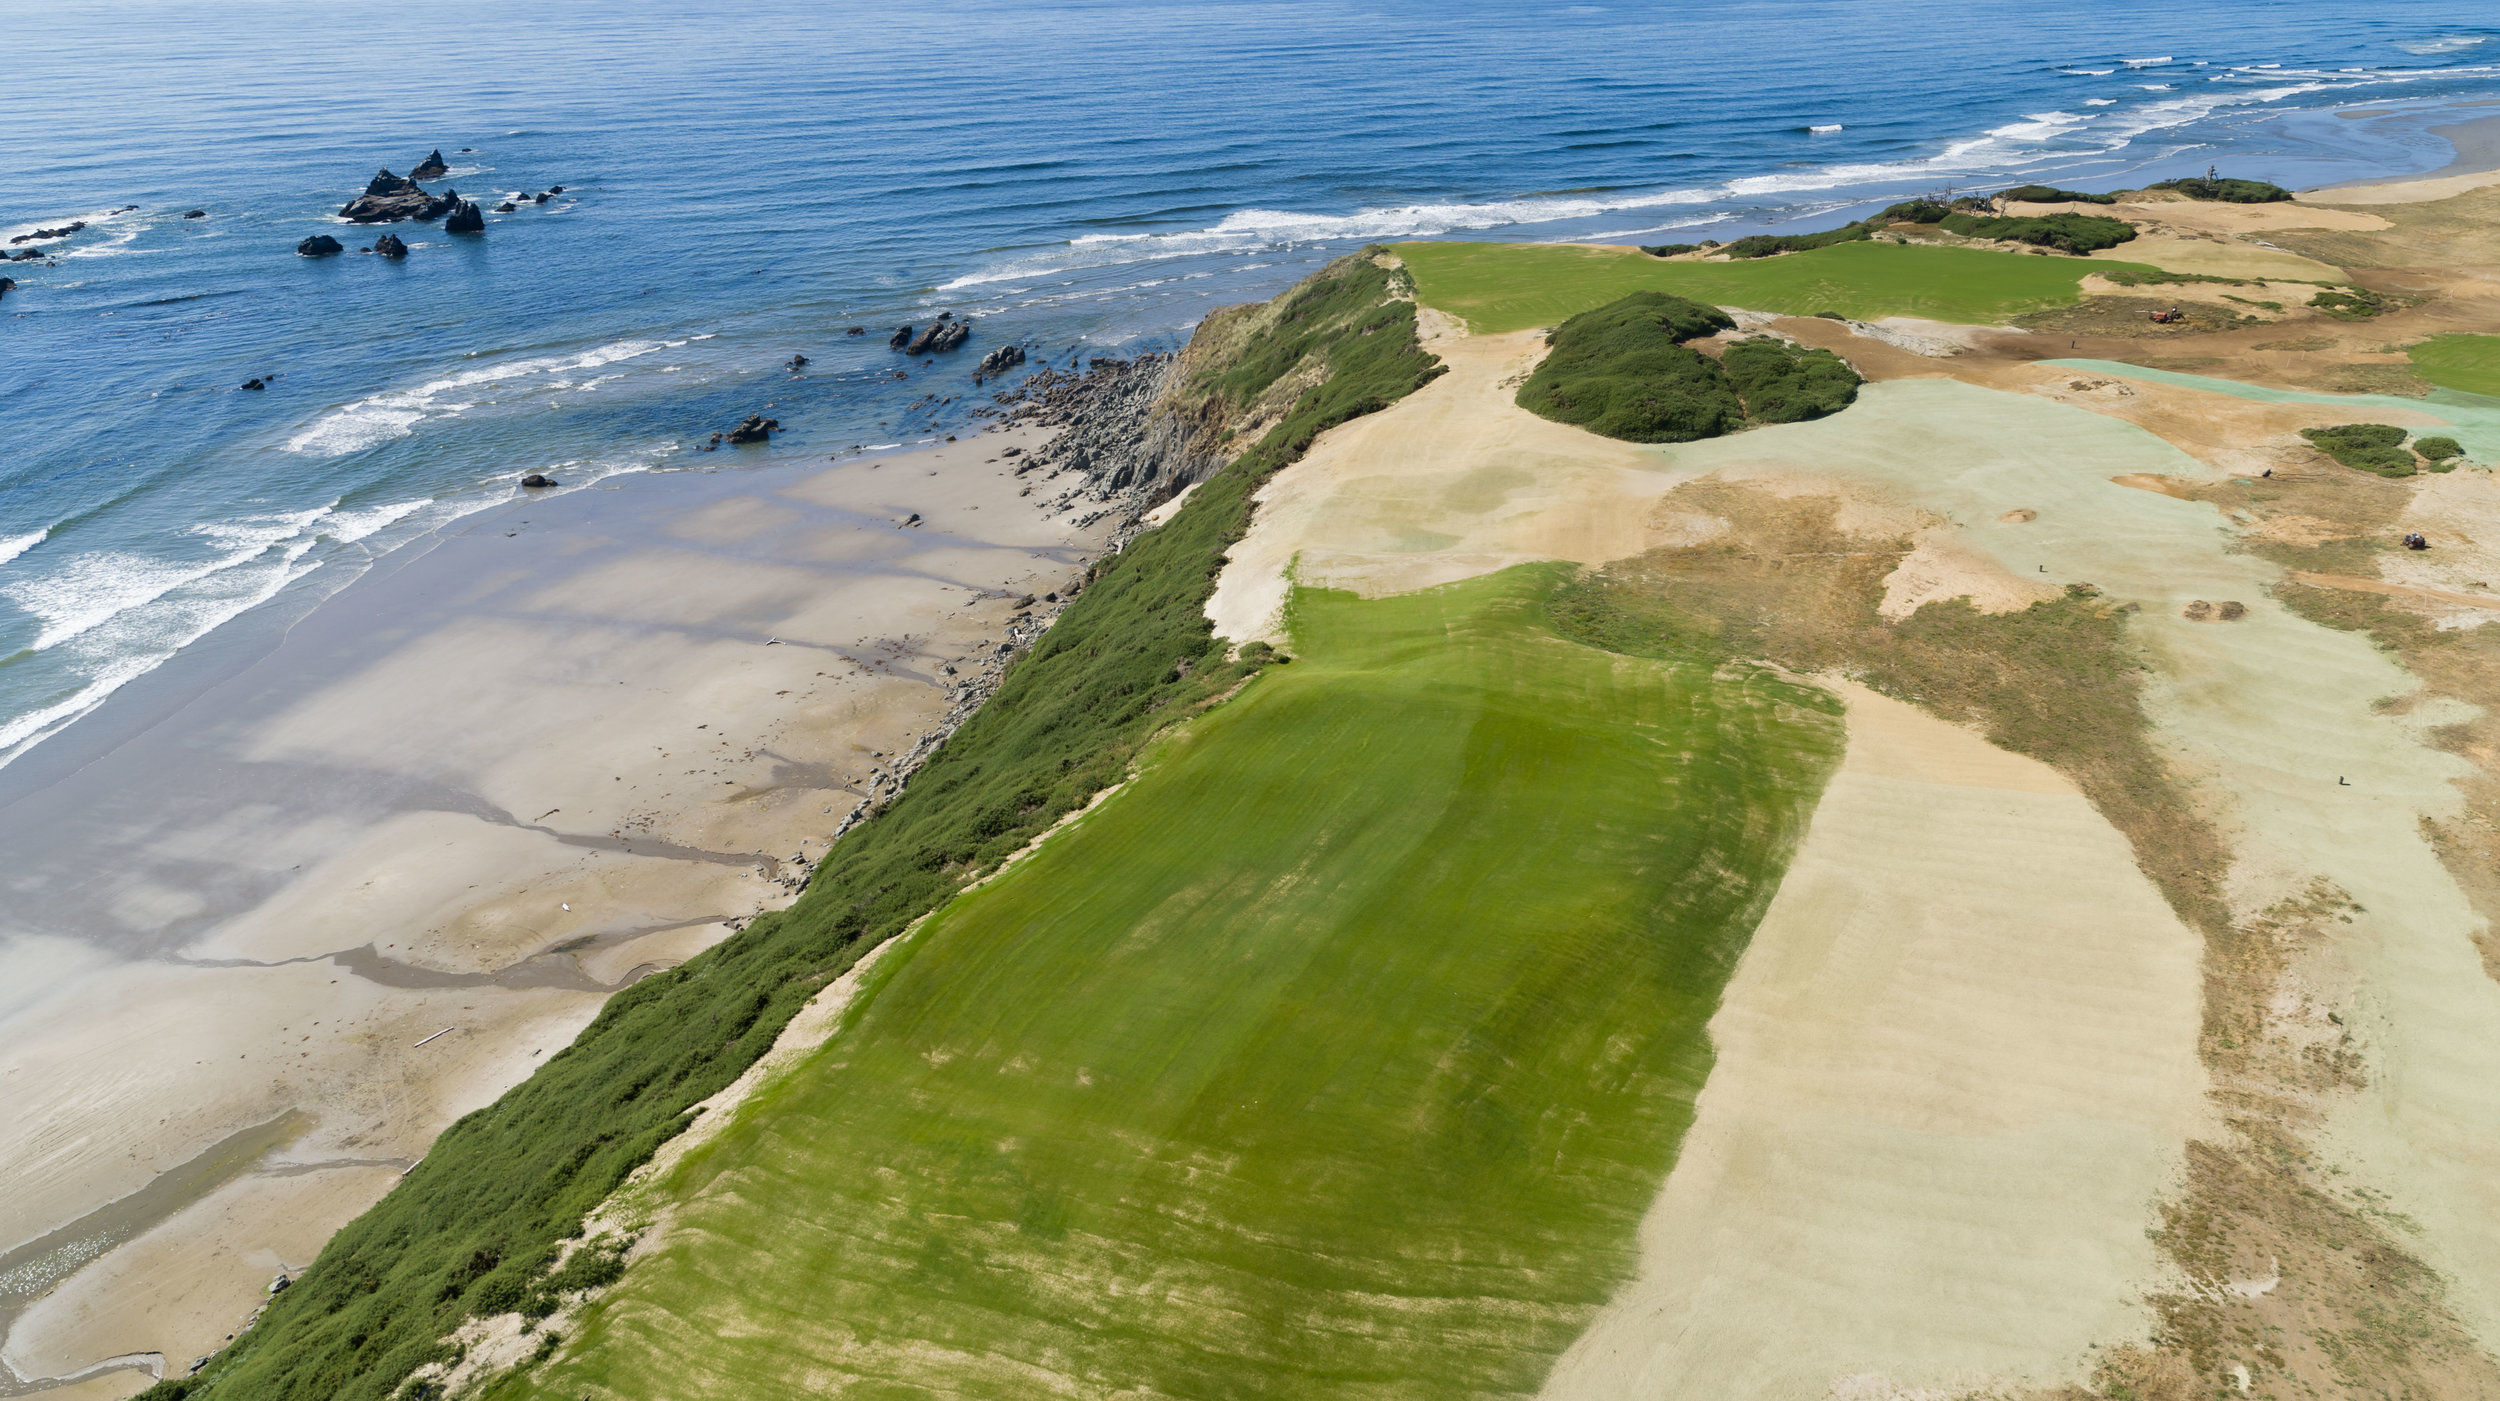 Recently seeded, the 15th hole is a slight dog-leg right Par-4 that heads directly west and begins a three hole stretch of links golf beauty right on the bluffs overlooking the mighty Pacific Ocean.